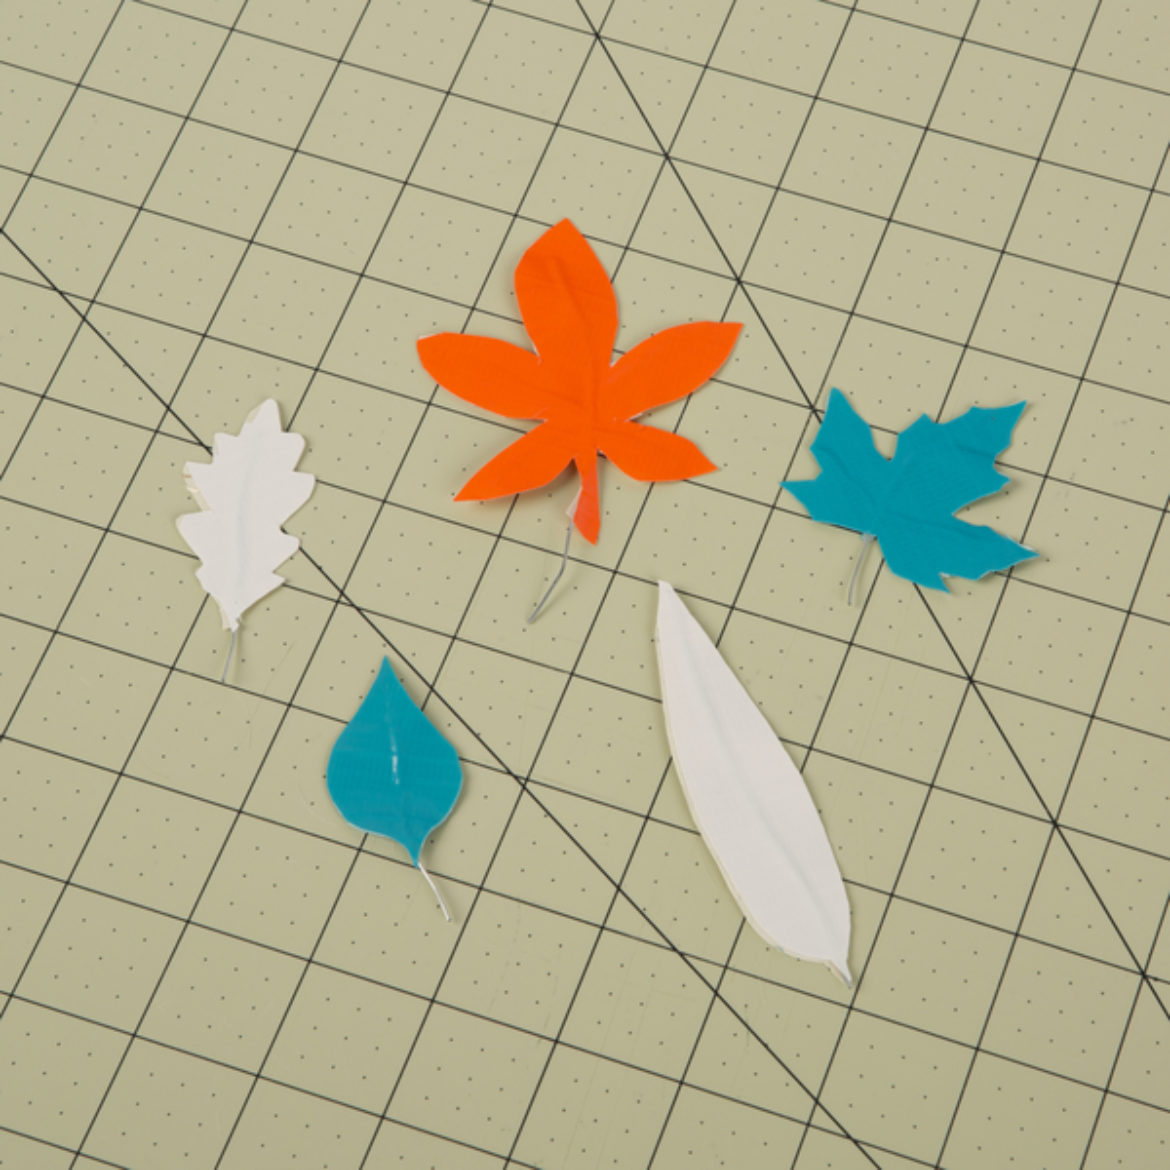 Various types of leaves made out of different color combinations